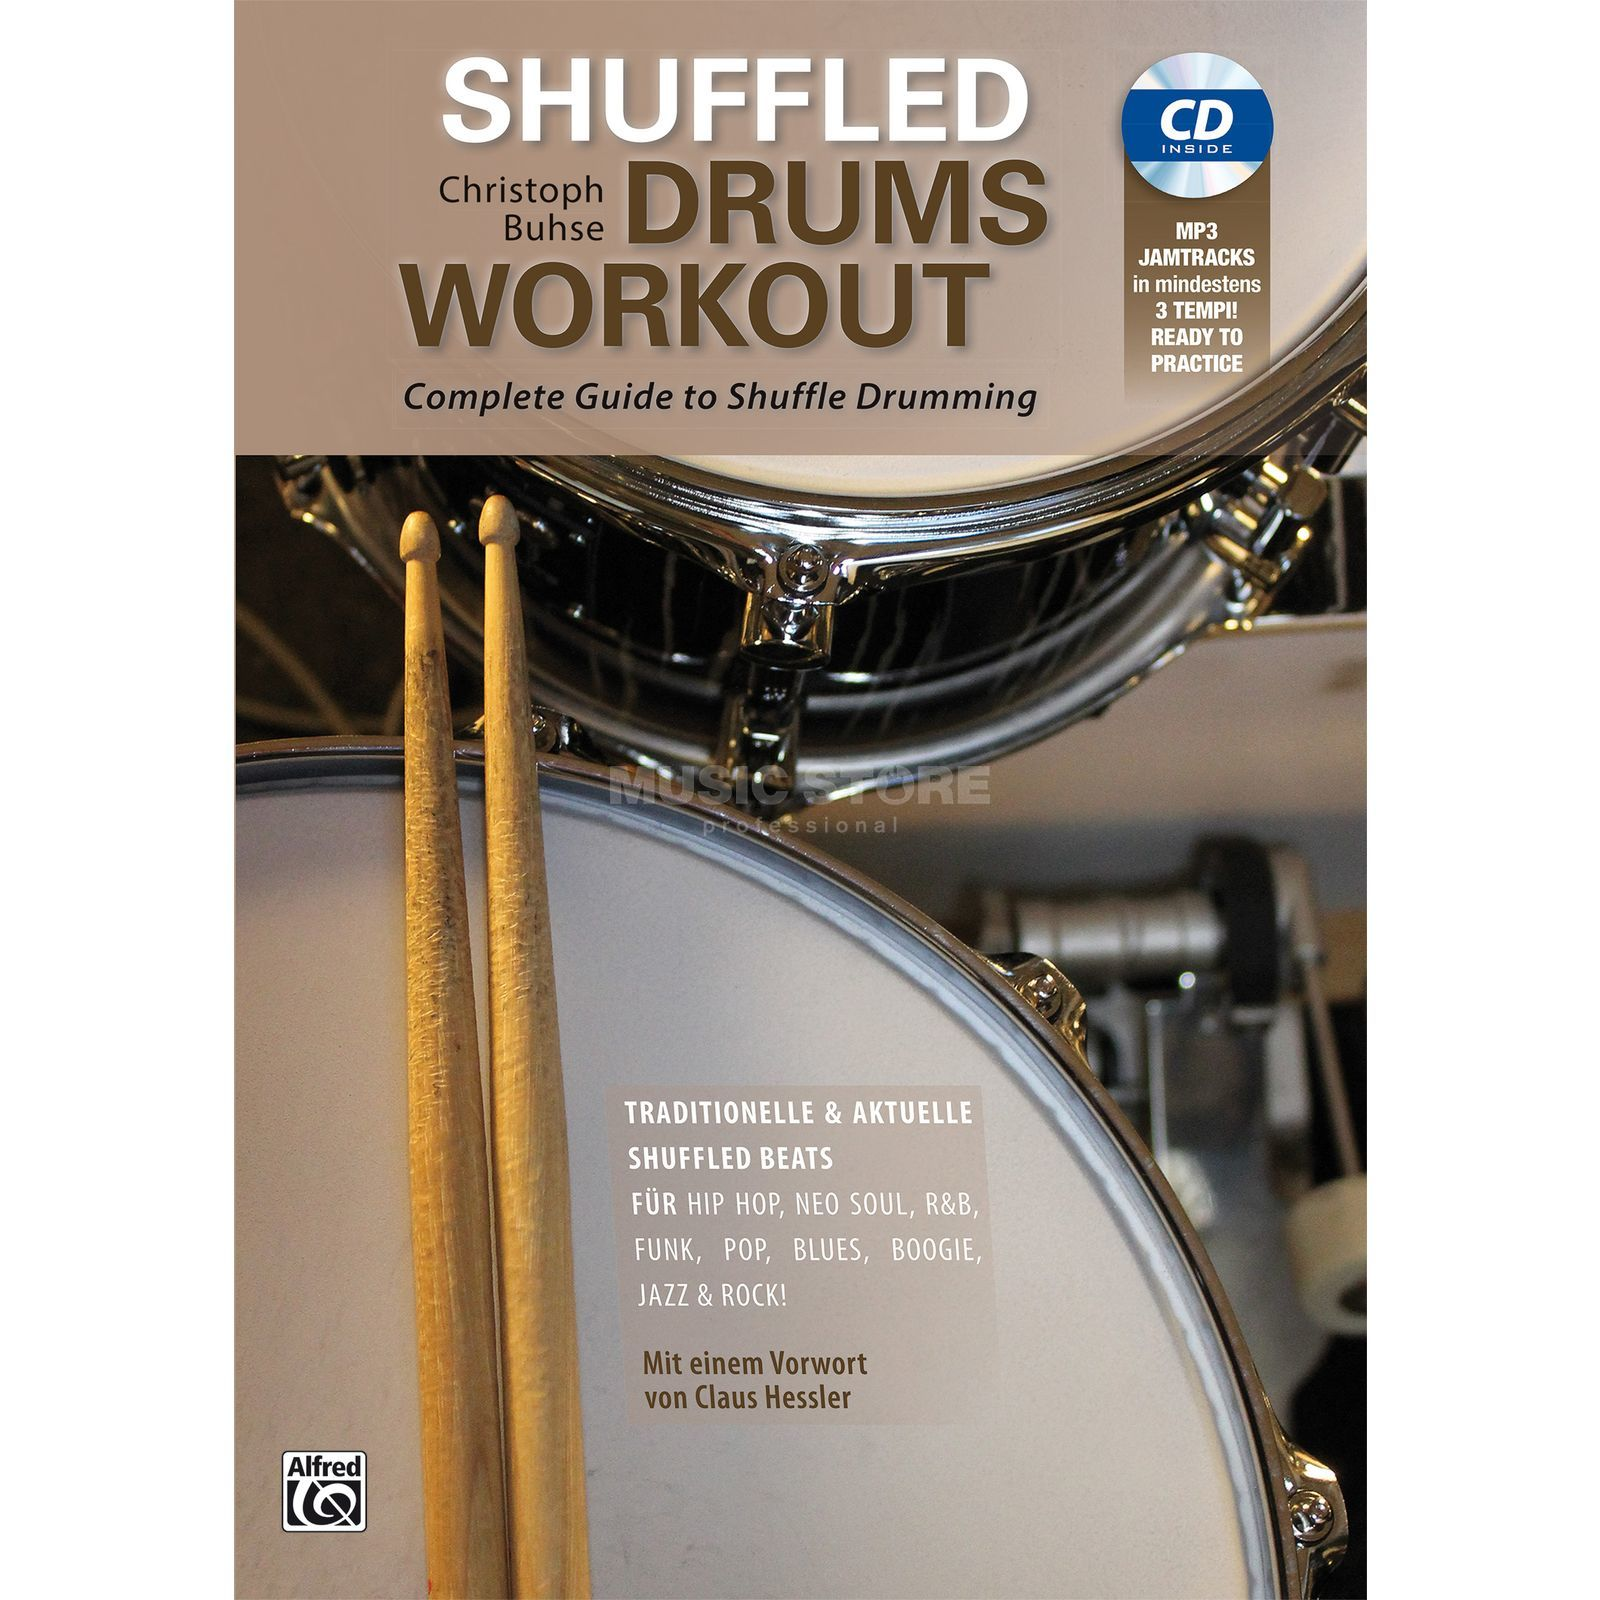 Alfred Music Shuffeld Drums Workout Christoph Buhse Produktbild